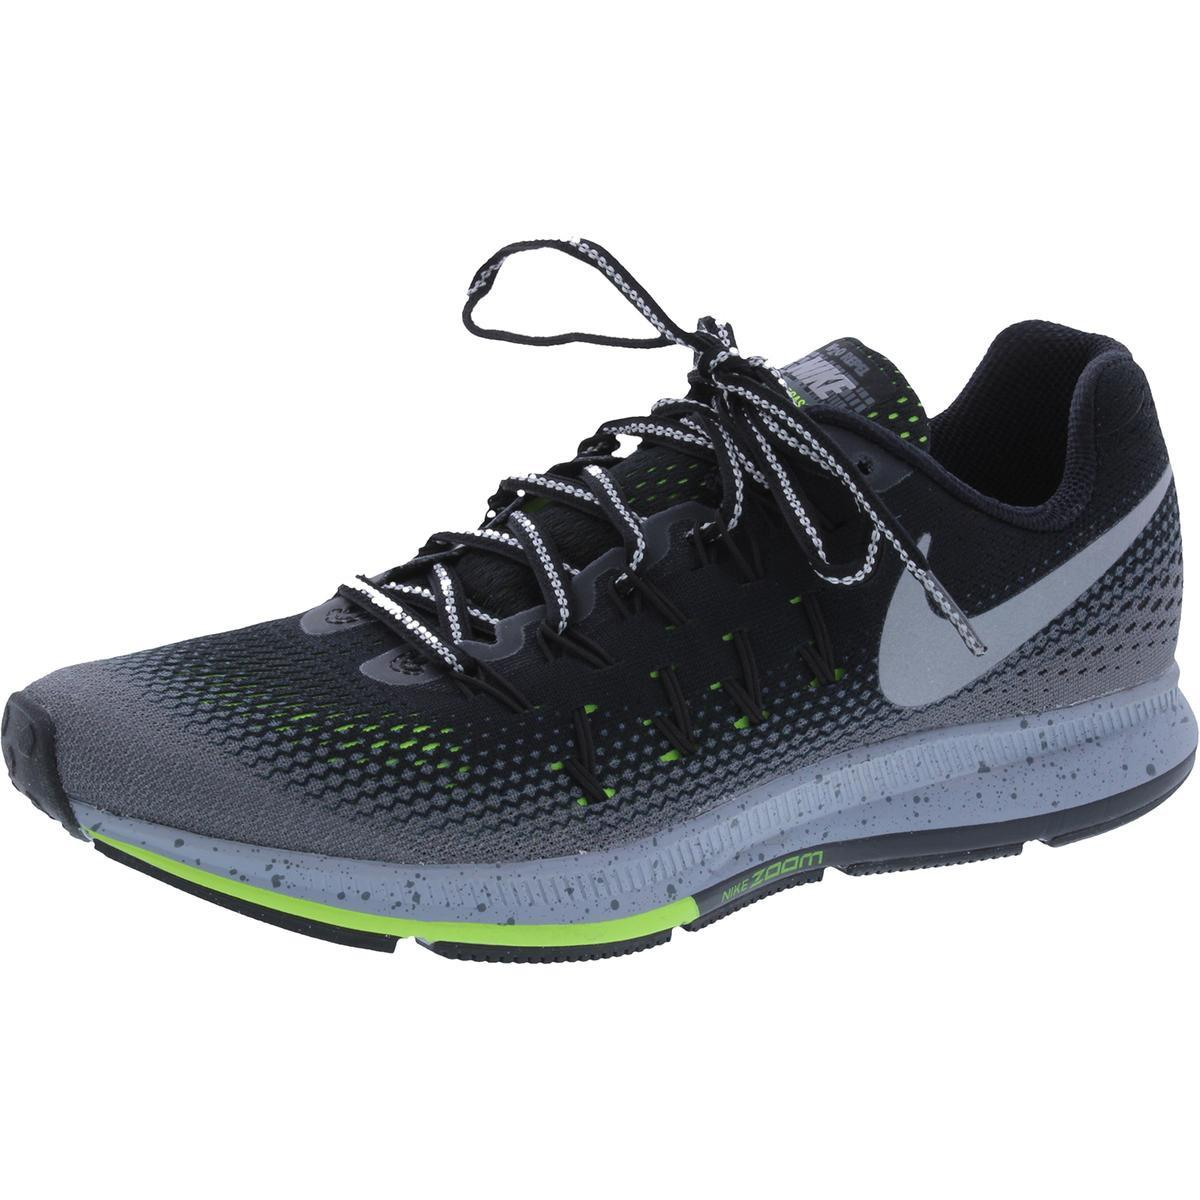 official photos ae3d4 04080 Lyst - Nike Air Zoom Pegasus 33 Shield Running Shoes for Men